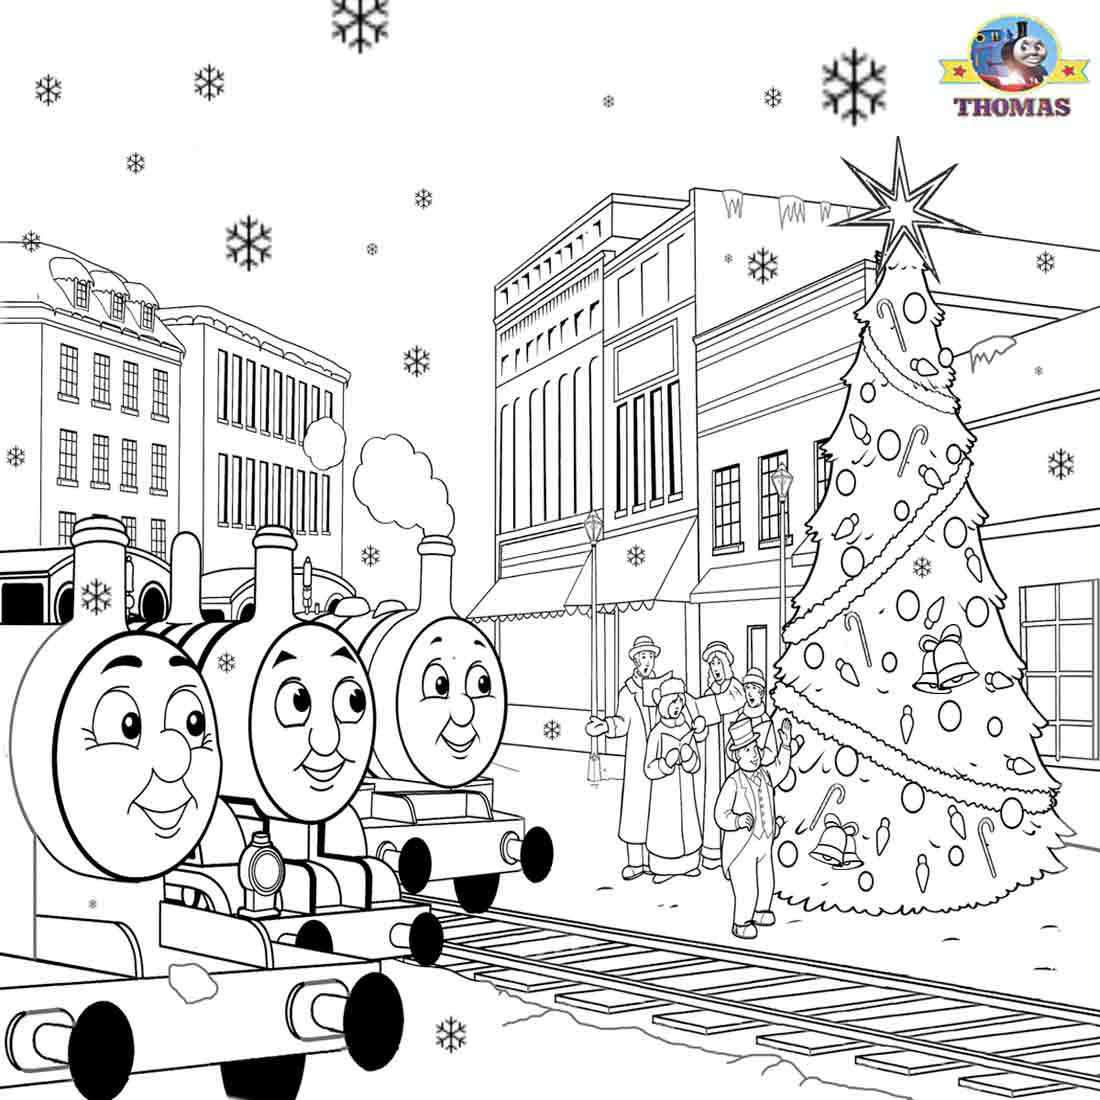 Christmas Village Coloring Pages Free Printable Christmas Village Wit… | Printable  christmas coloring pages, Christmas coloring pages, Free christmas coloring  pages | 1100x1100